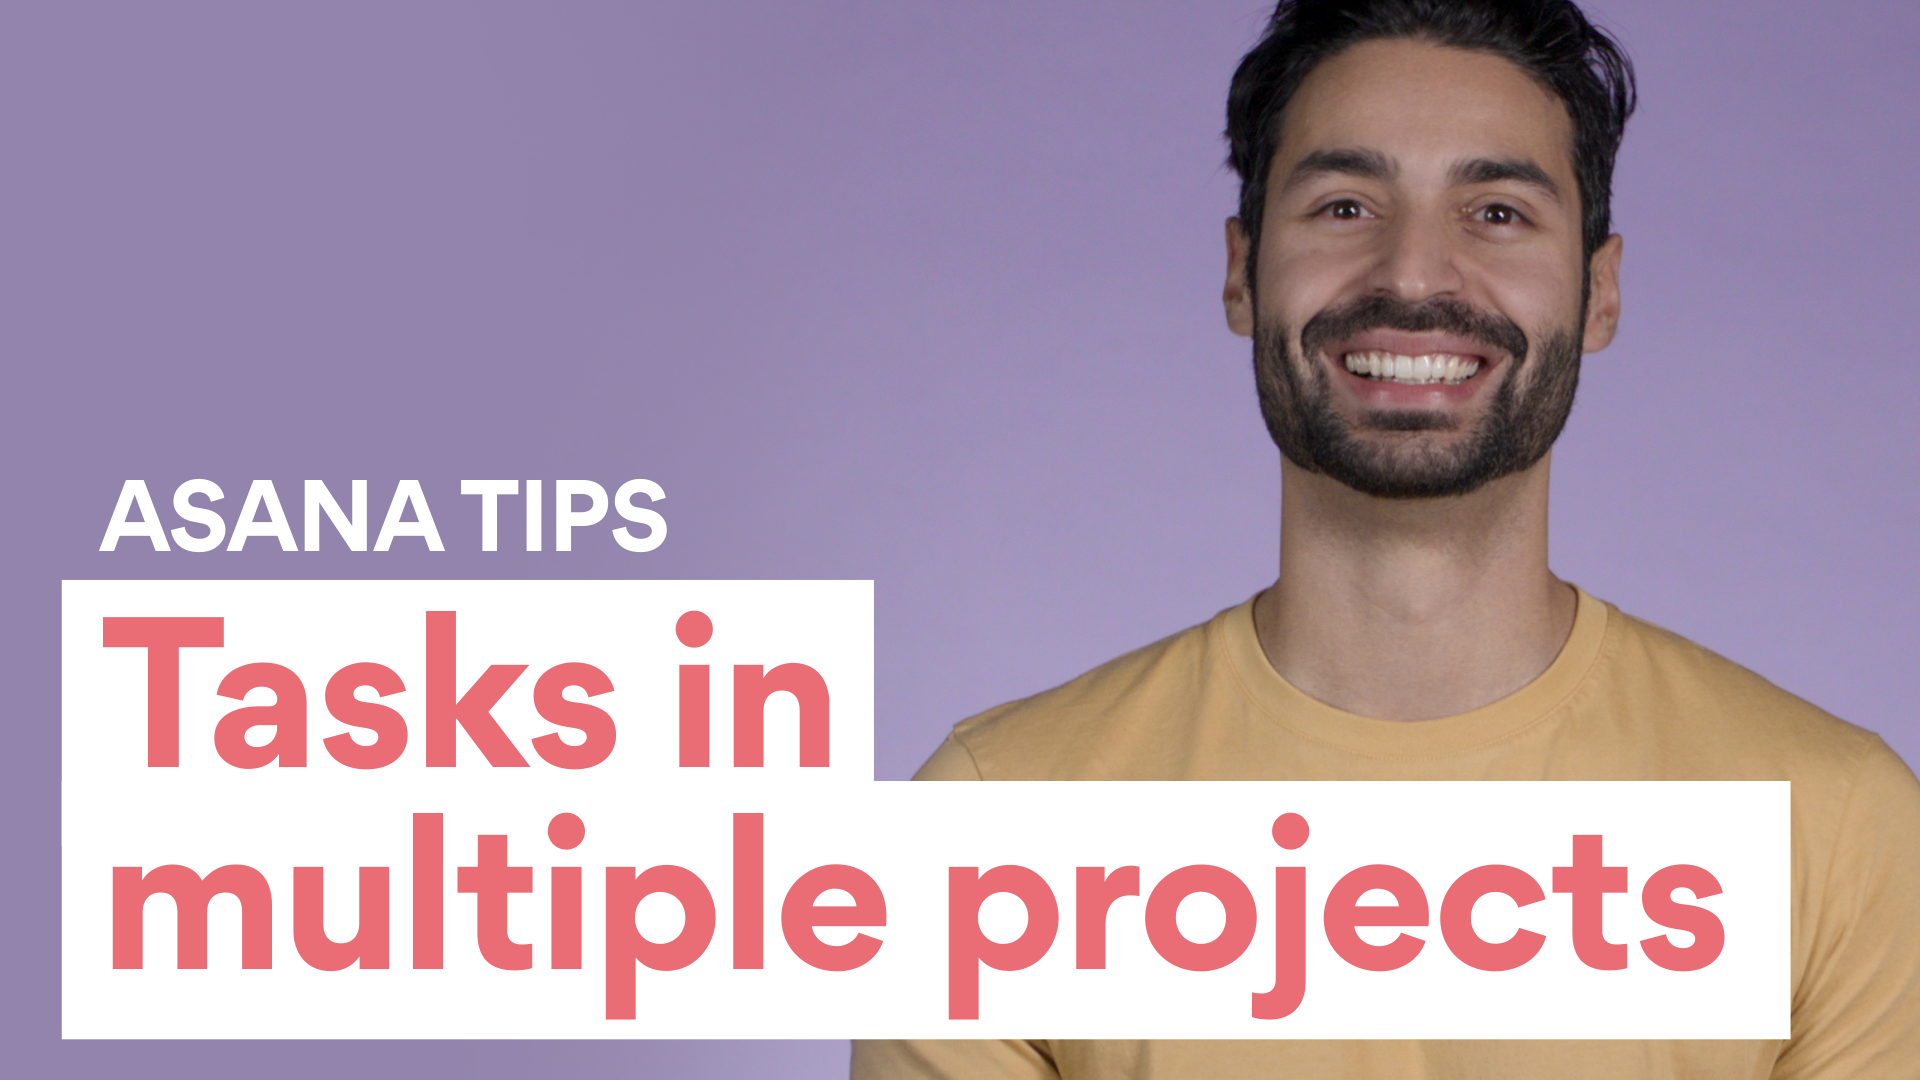 Tasks in multiple projects